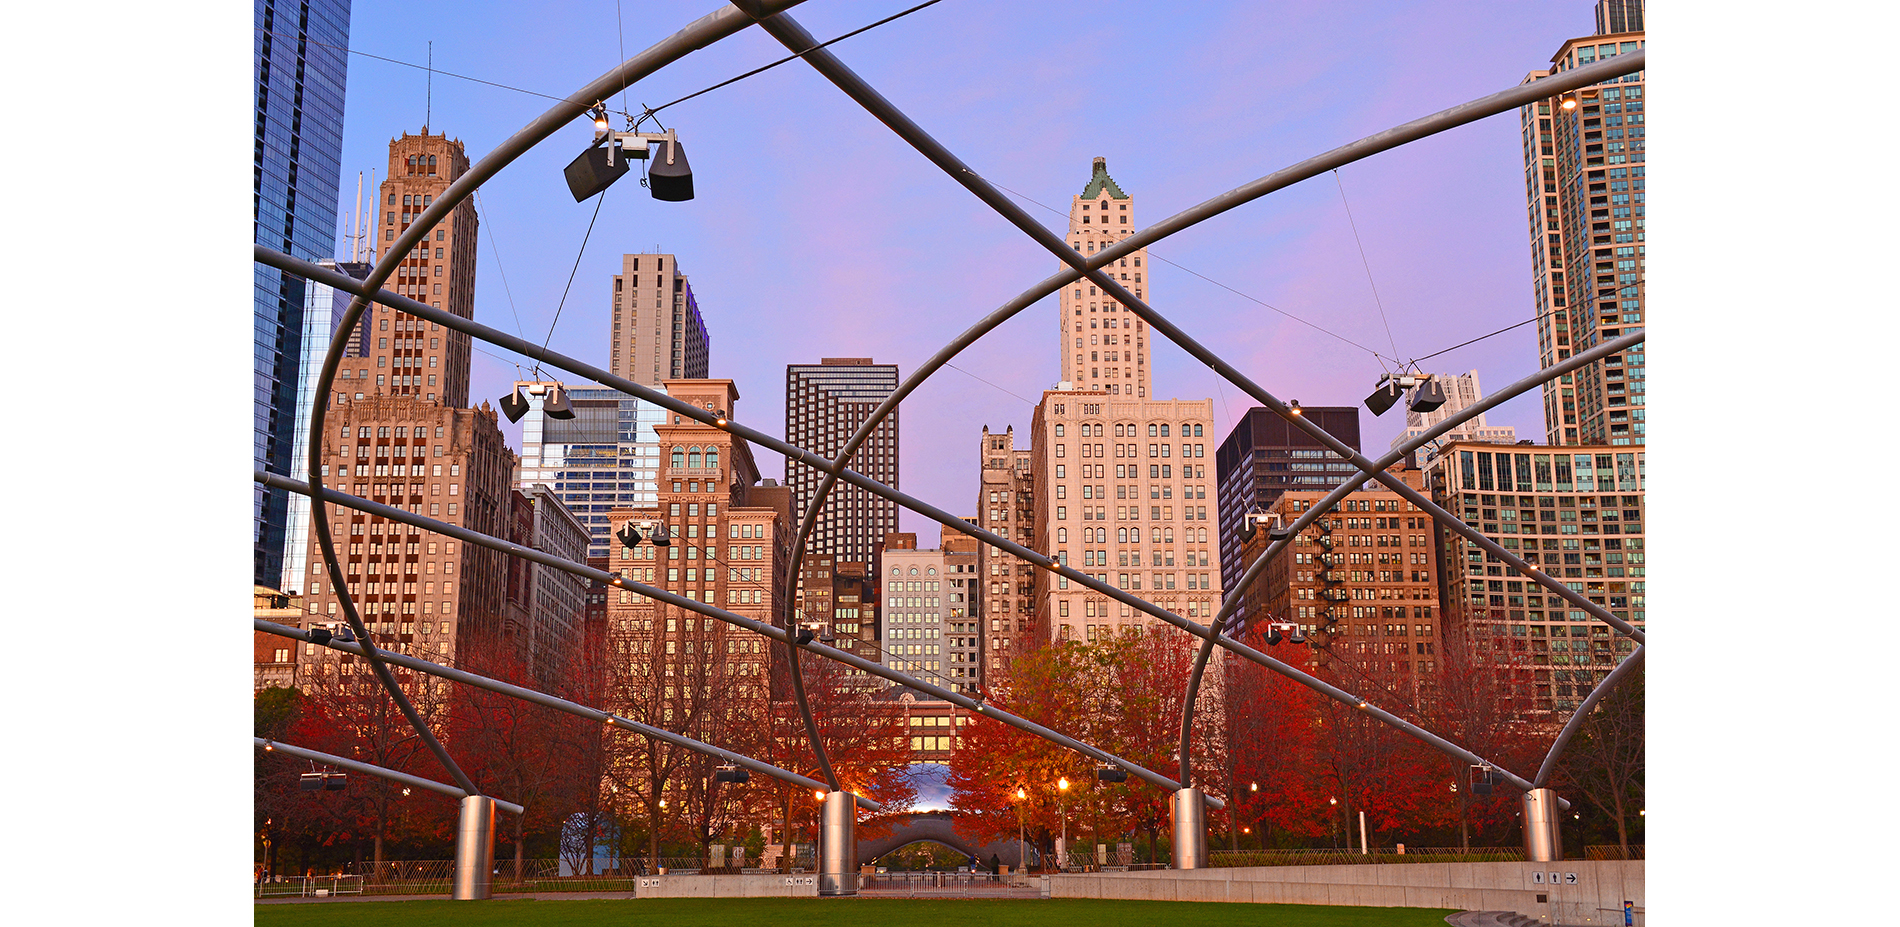 """Cloud Gate"" as viewed across the Jay Pritzker Pavilion Great Lawn"